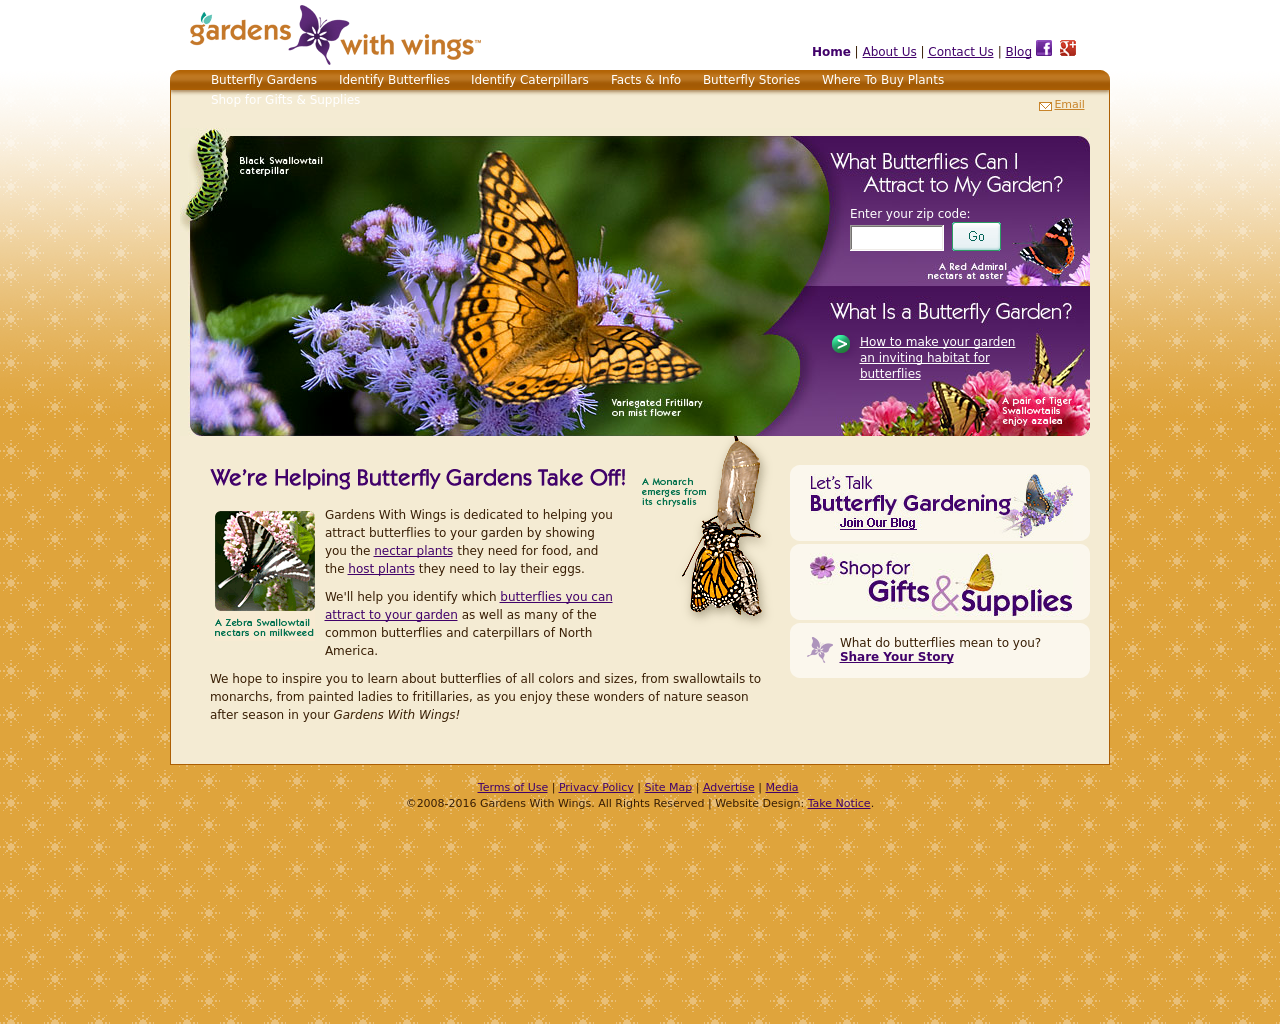 Gardens-With-Wings-Advertising-Reviews-Pricing